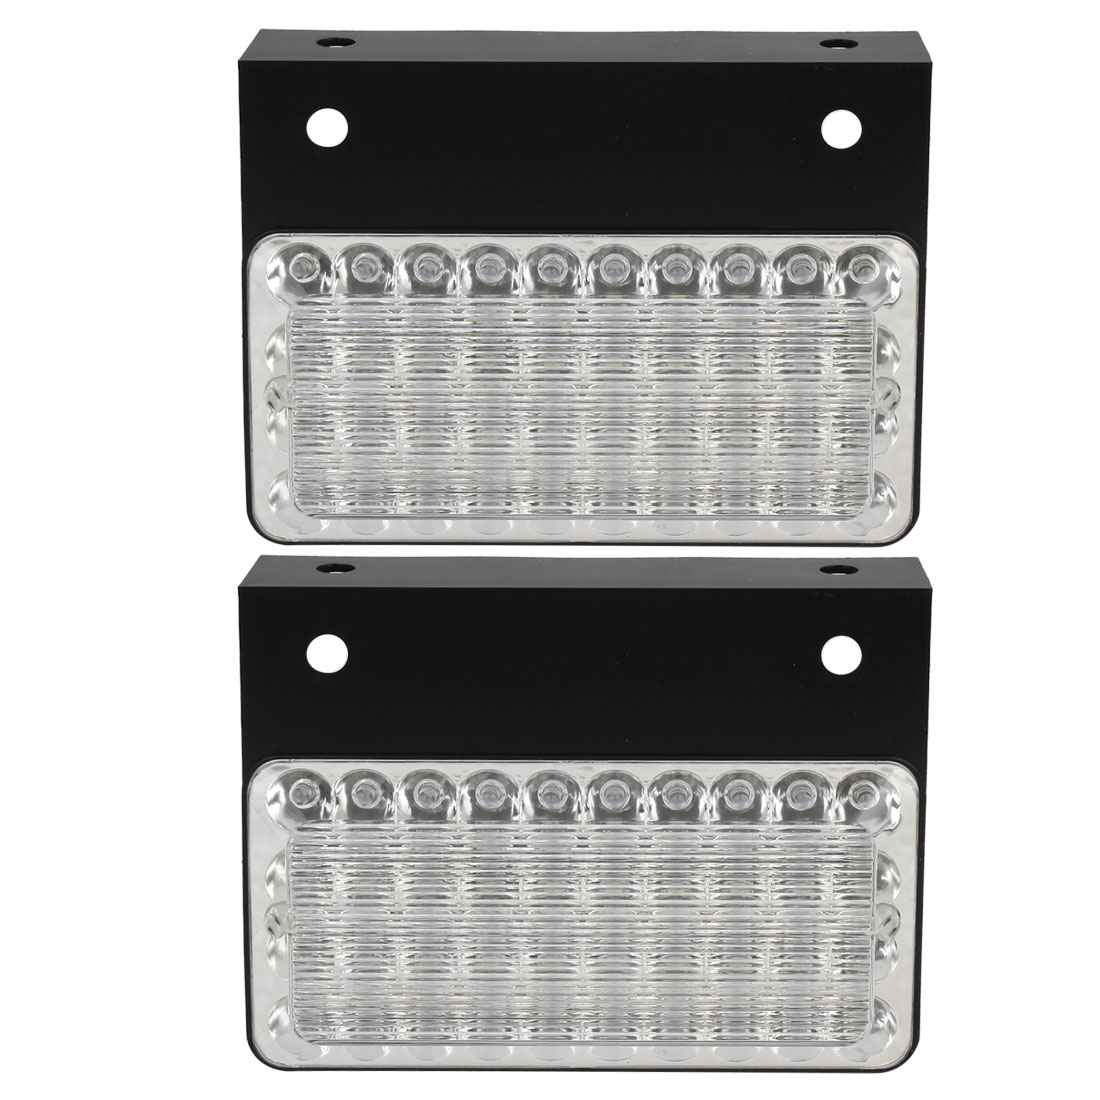 2 Pcs Car Plastic Casing White 40 LED Stop Turn Parking Tail Light DC 24V